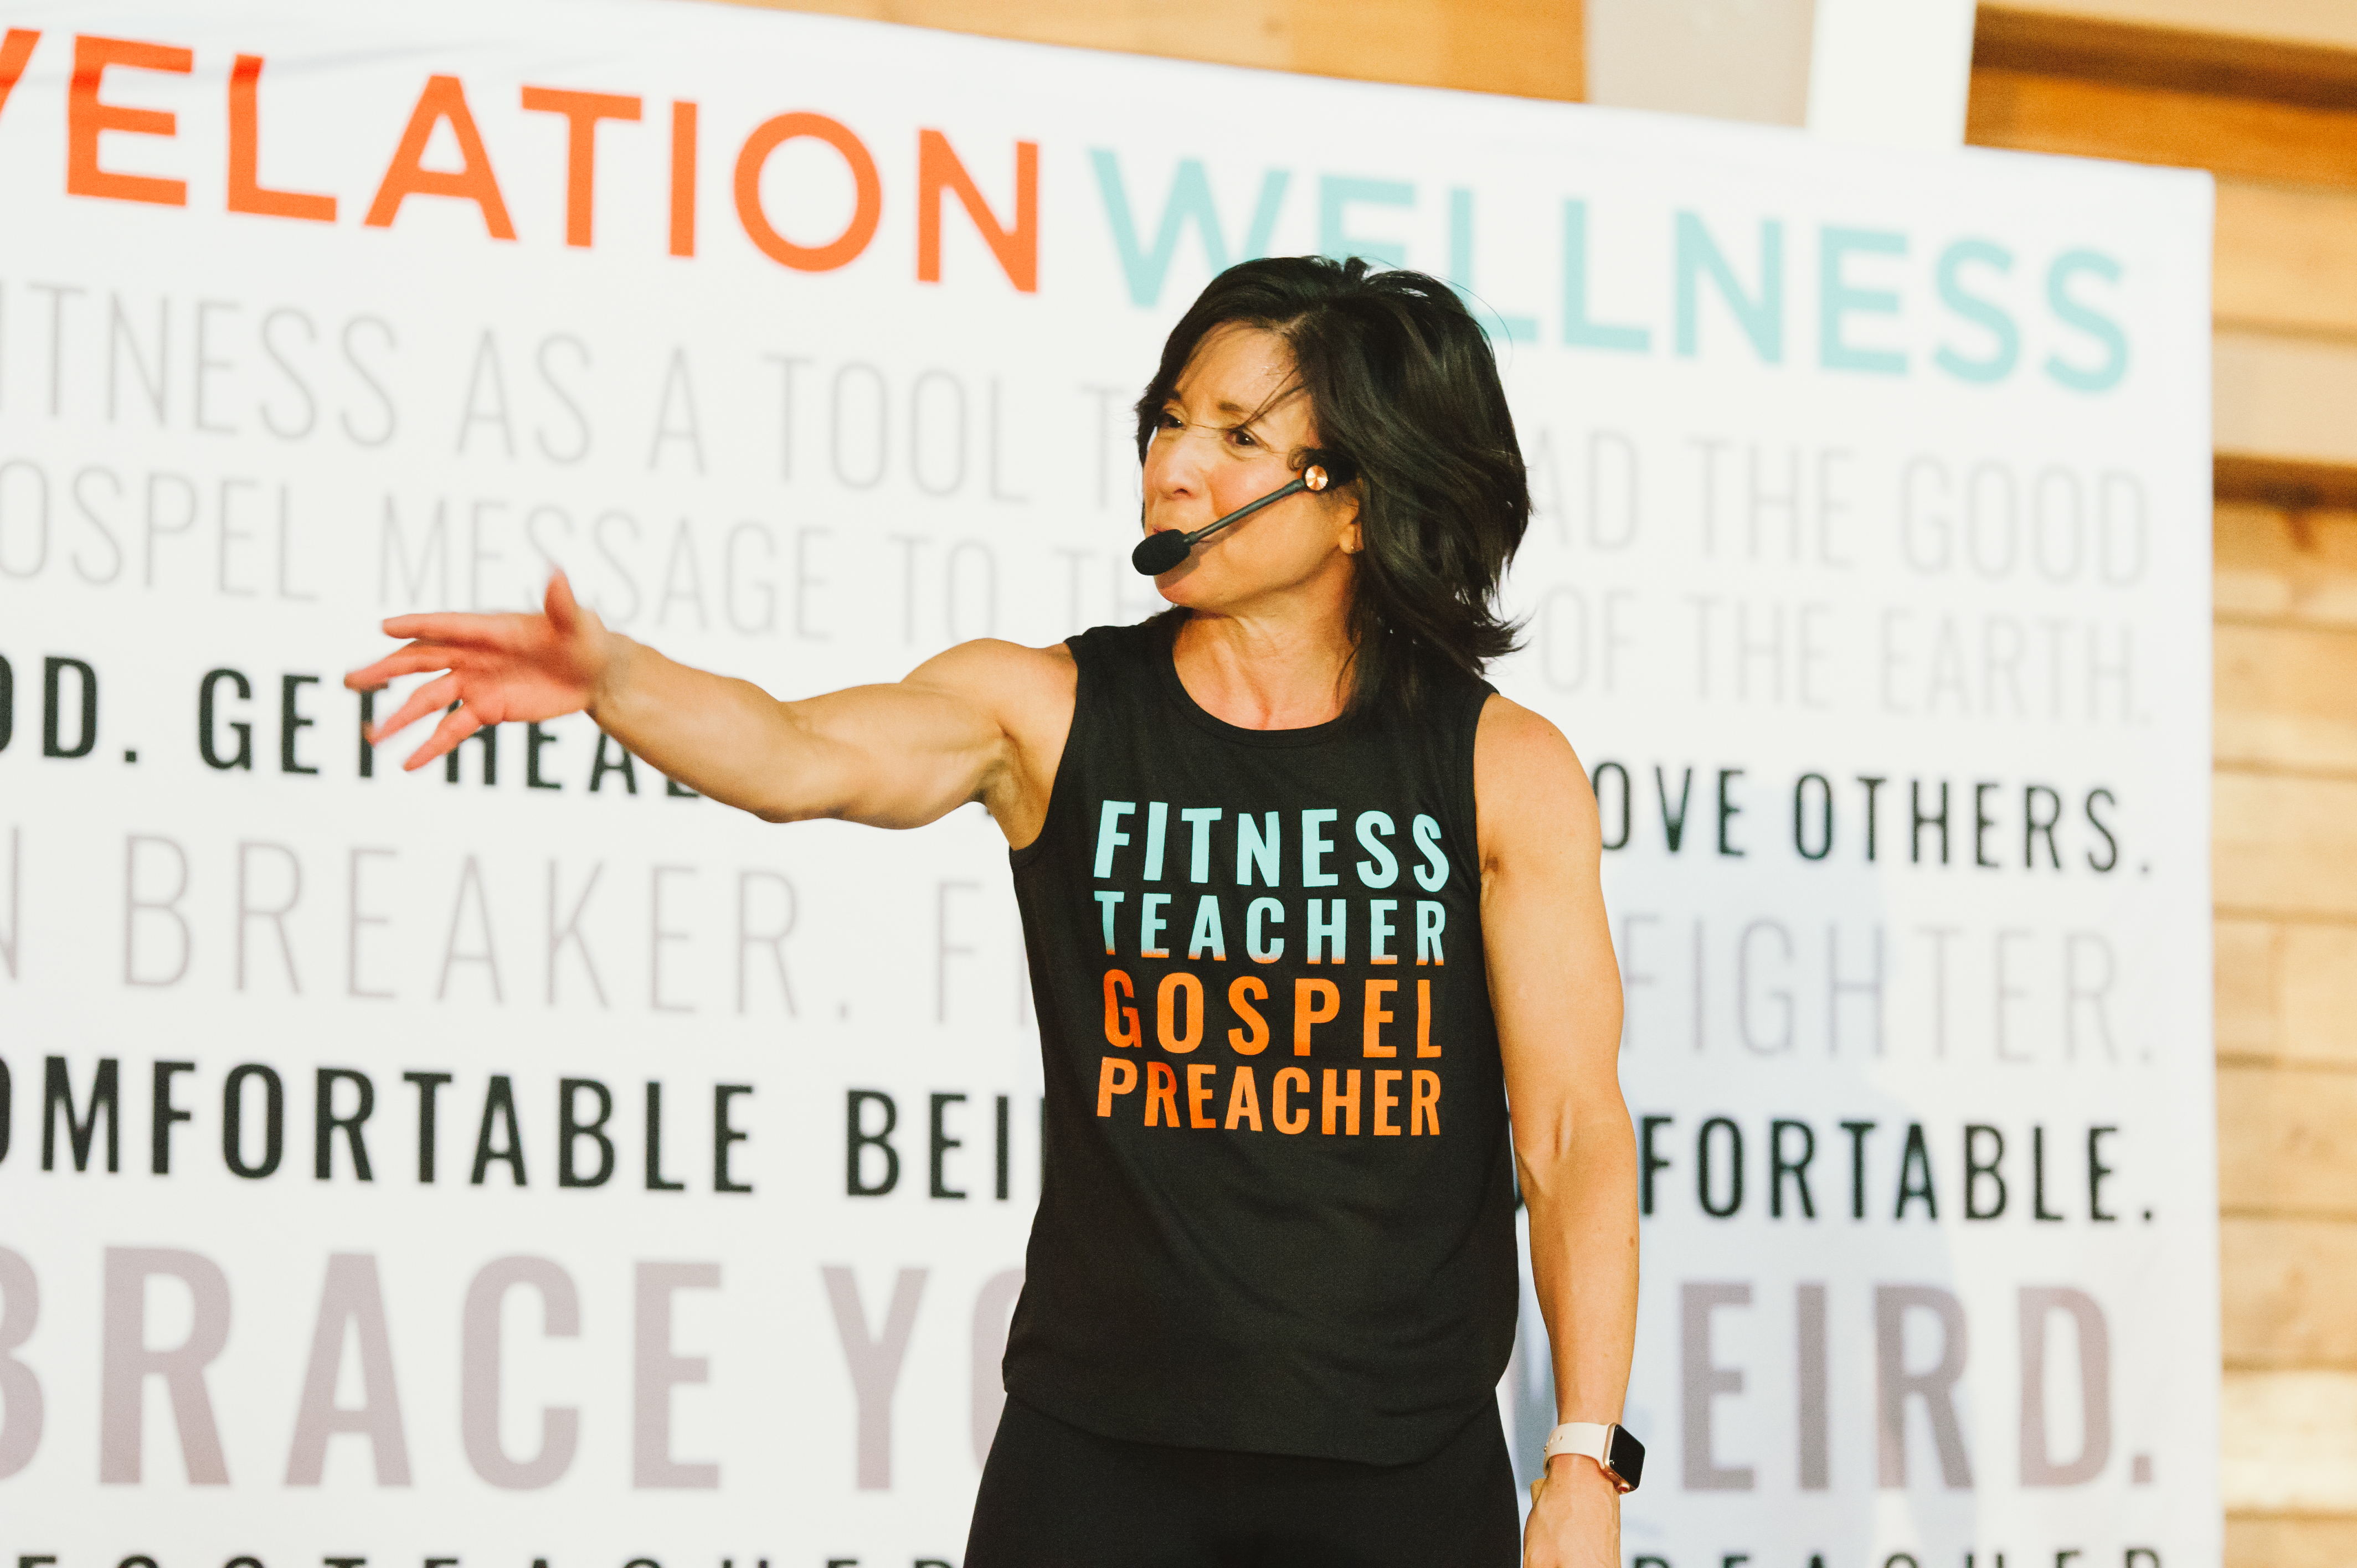 Alisa Keeton Revelation Wellness